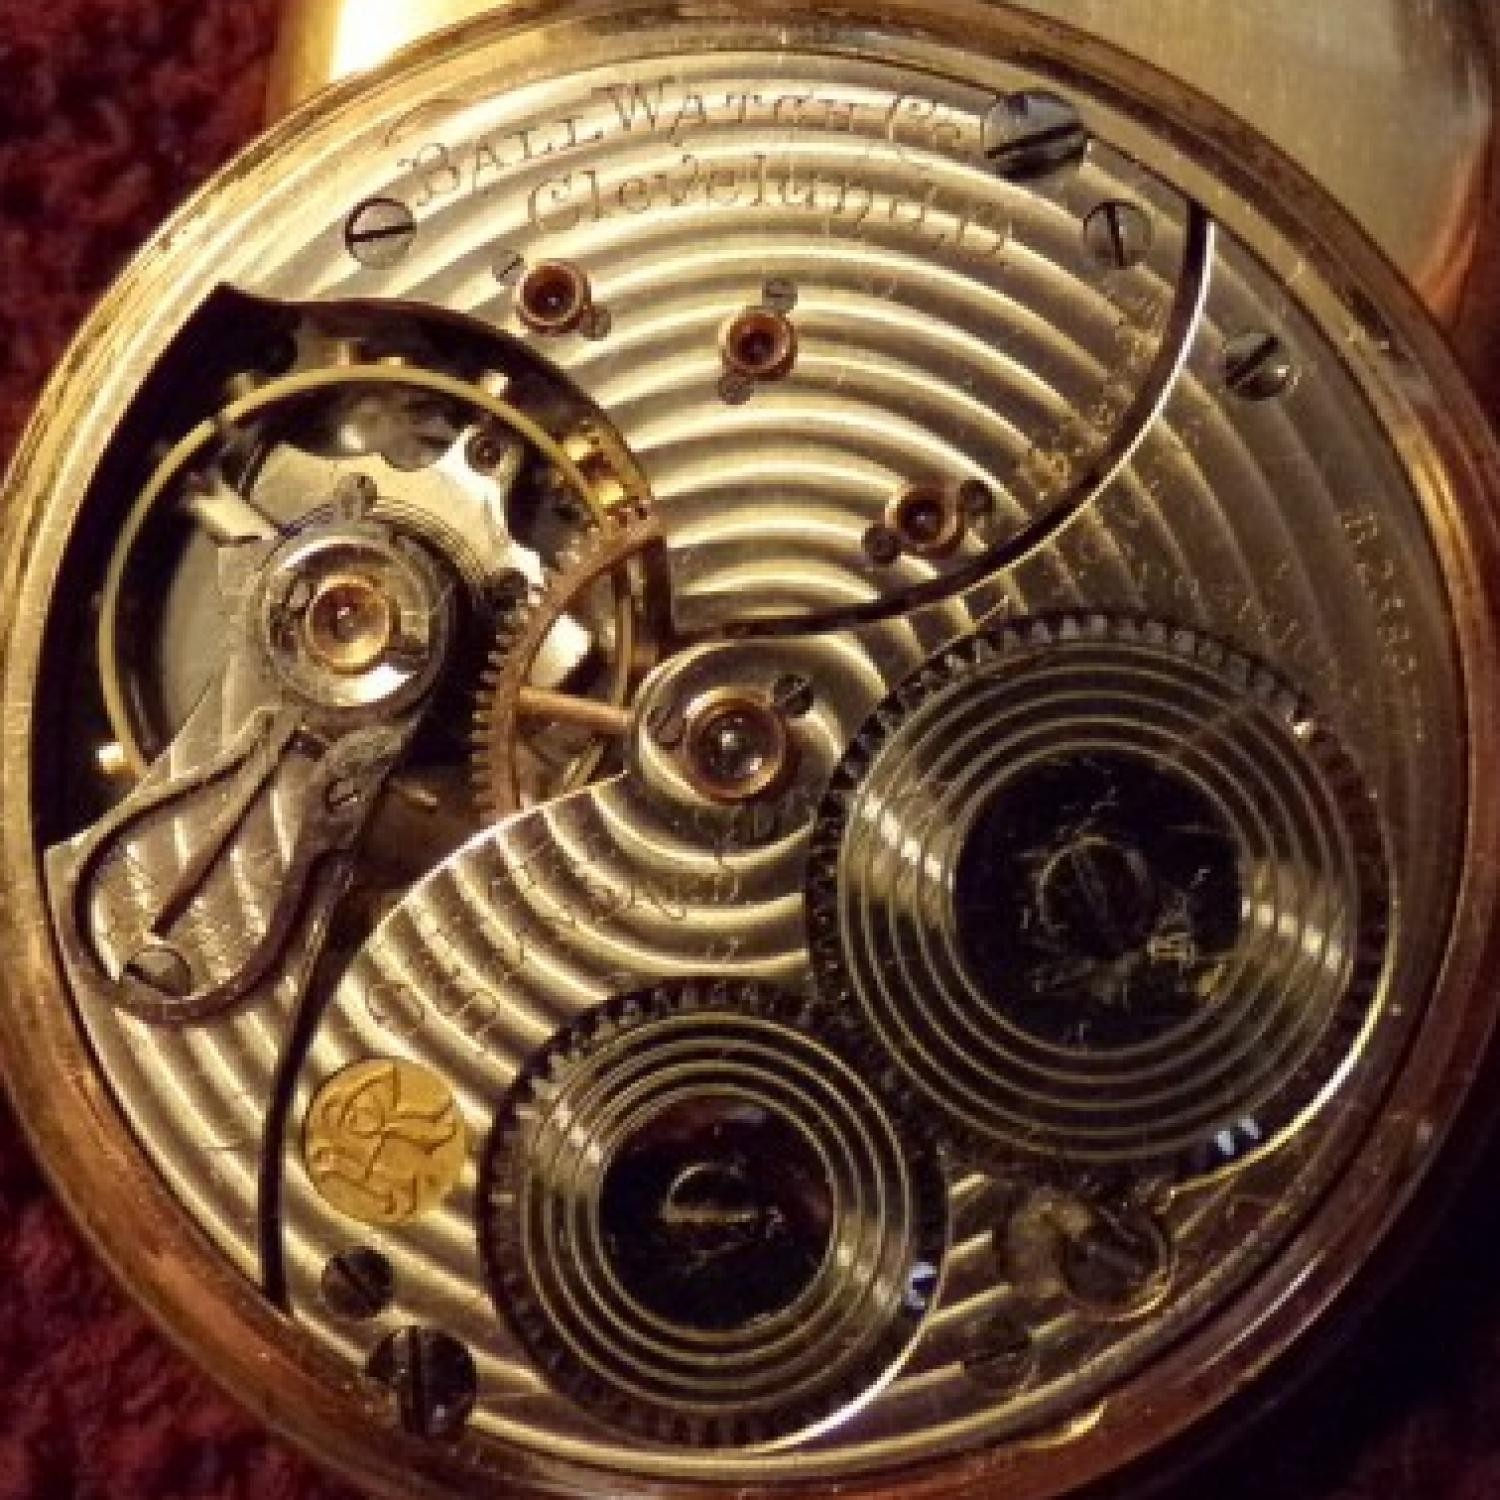 Image of Ball - Waltham Official Standard #B238977 Movement